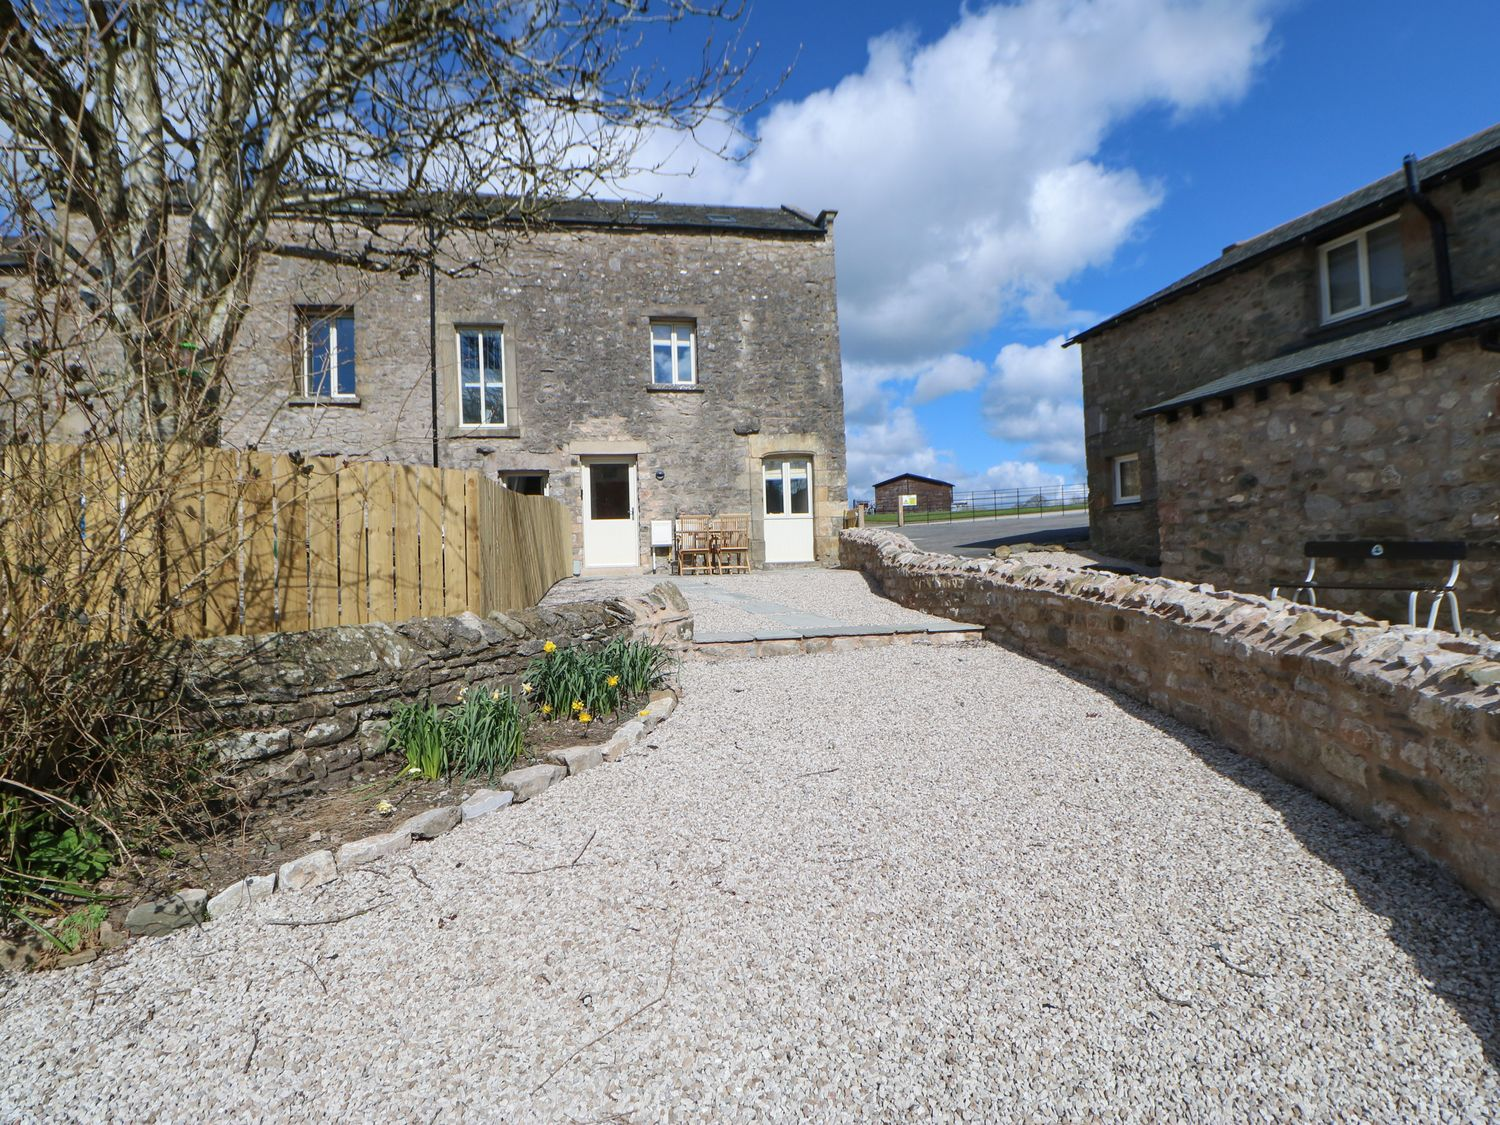 1 Crookenden Row - Yorkshire Dales - 1057802 - photo 1